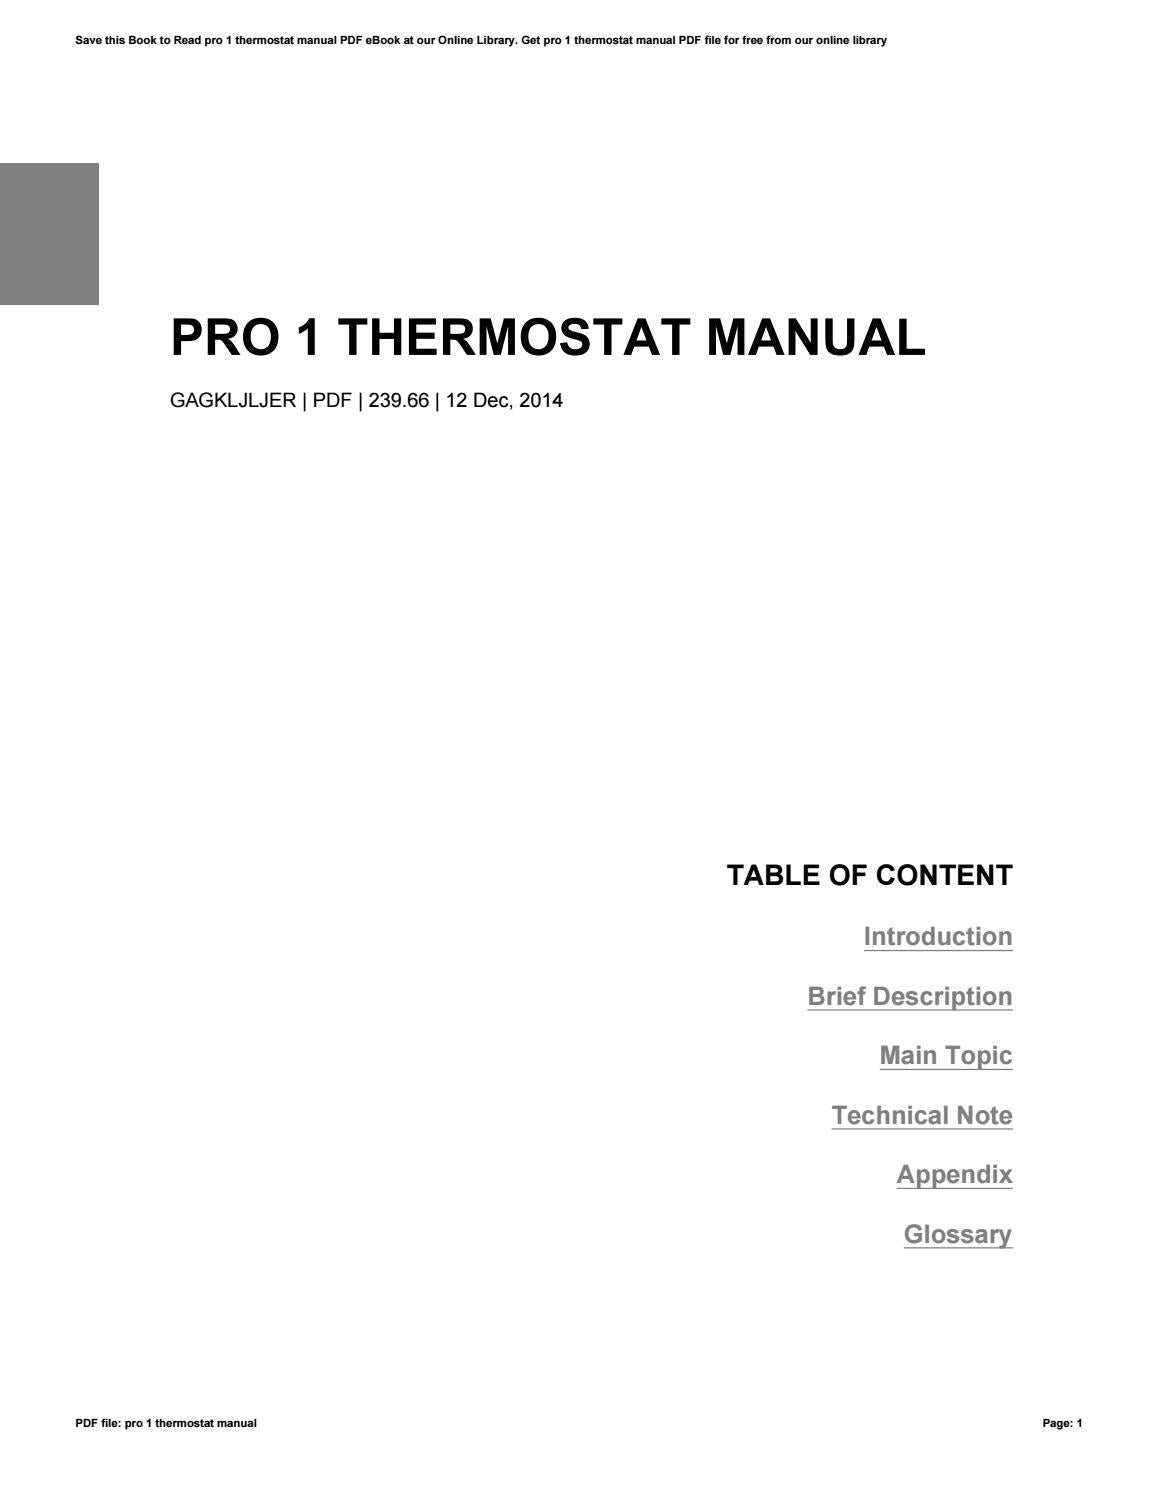 Pro 1 Thermostat Manual By Jasmia21siome Issuu